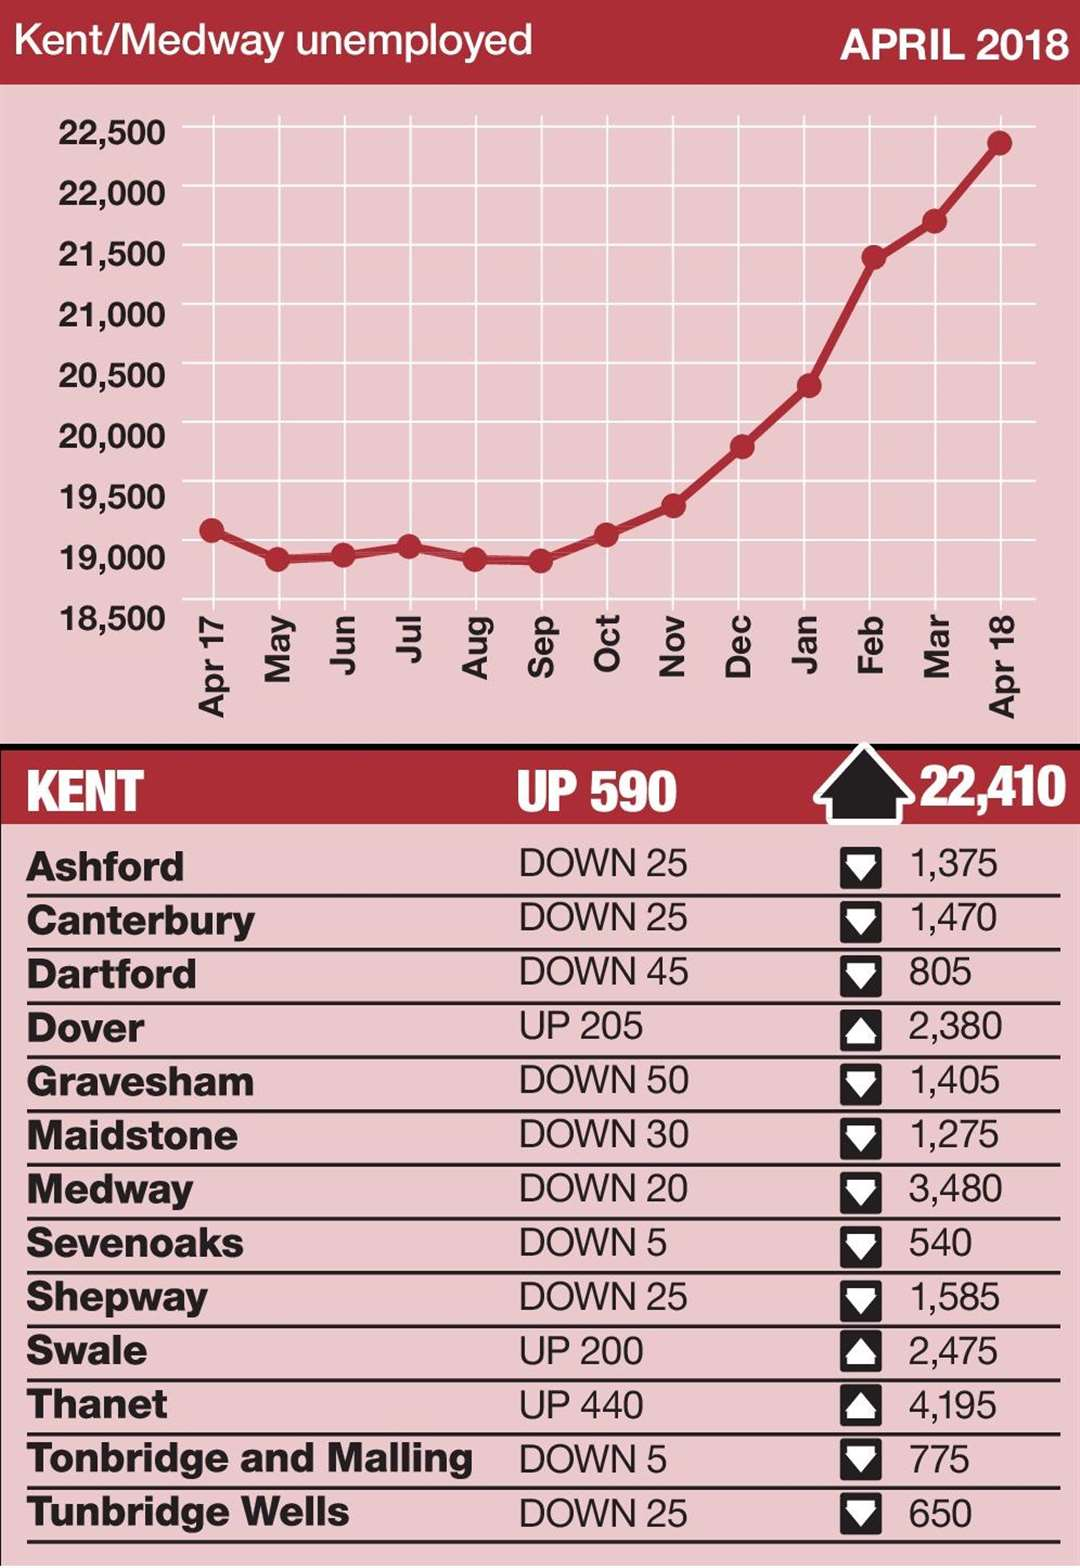 The number of people on unemployment benefits in Kent has risen for seven consecutive months